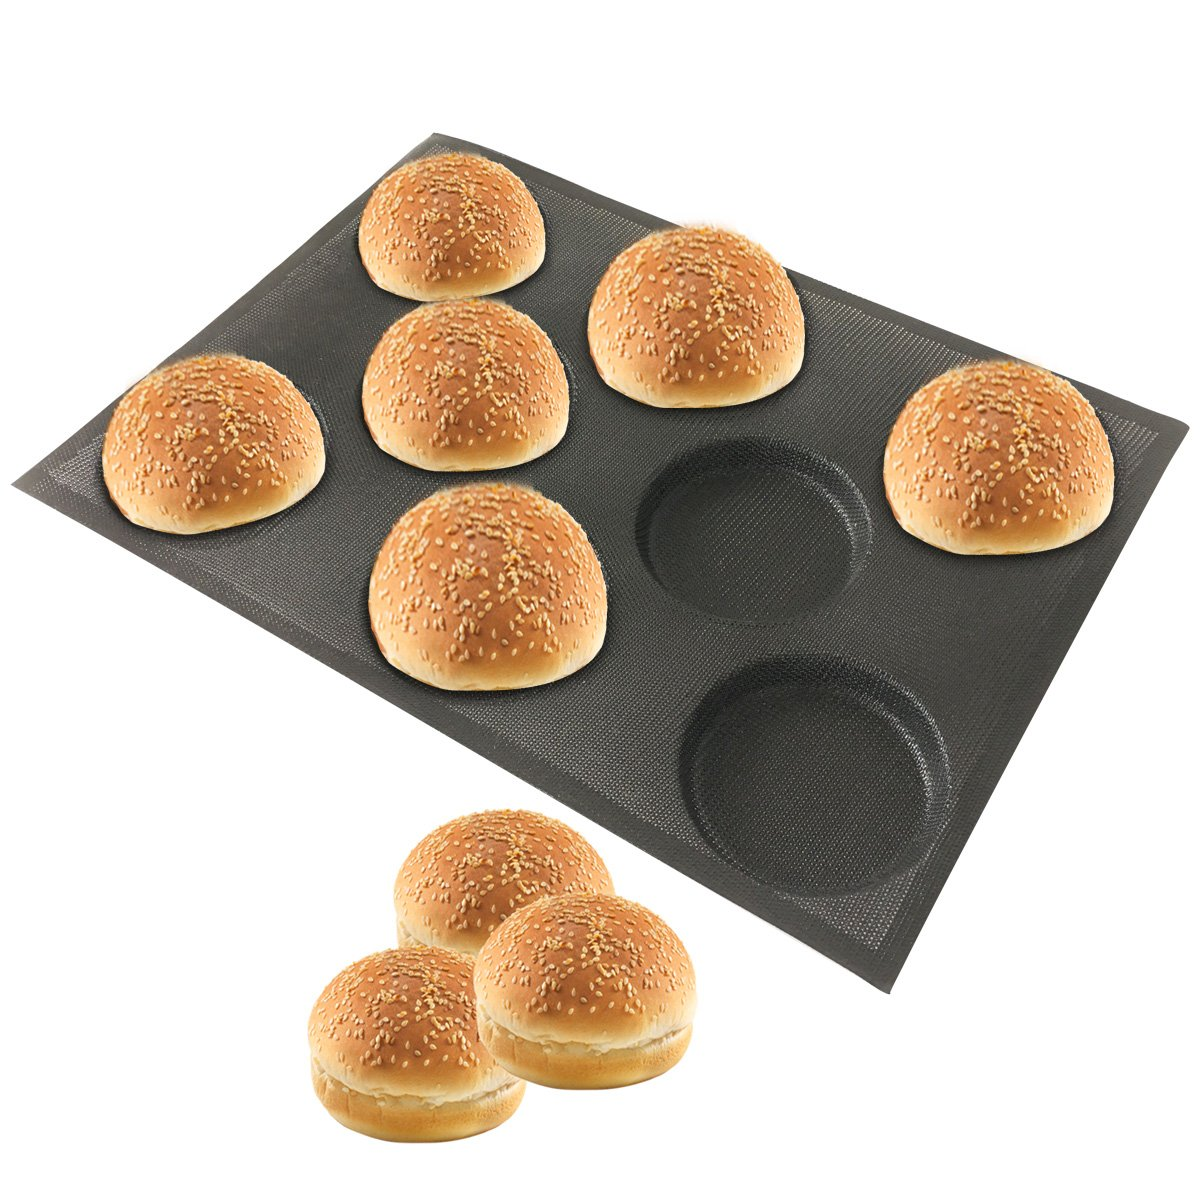 Bluedrop Silicone Hamburger Bread Forms Perforated Bakery Molds Non Stick Baking Sheets Fit Half Pan Size by Bluedrop